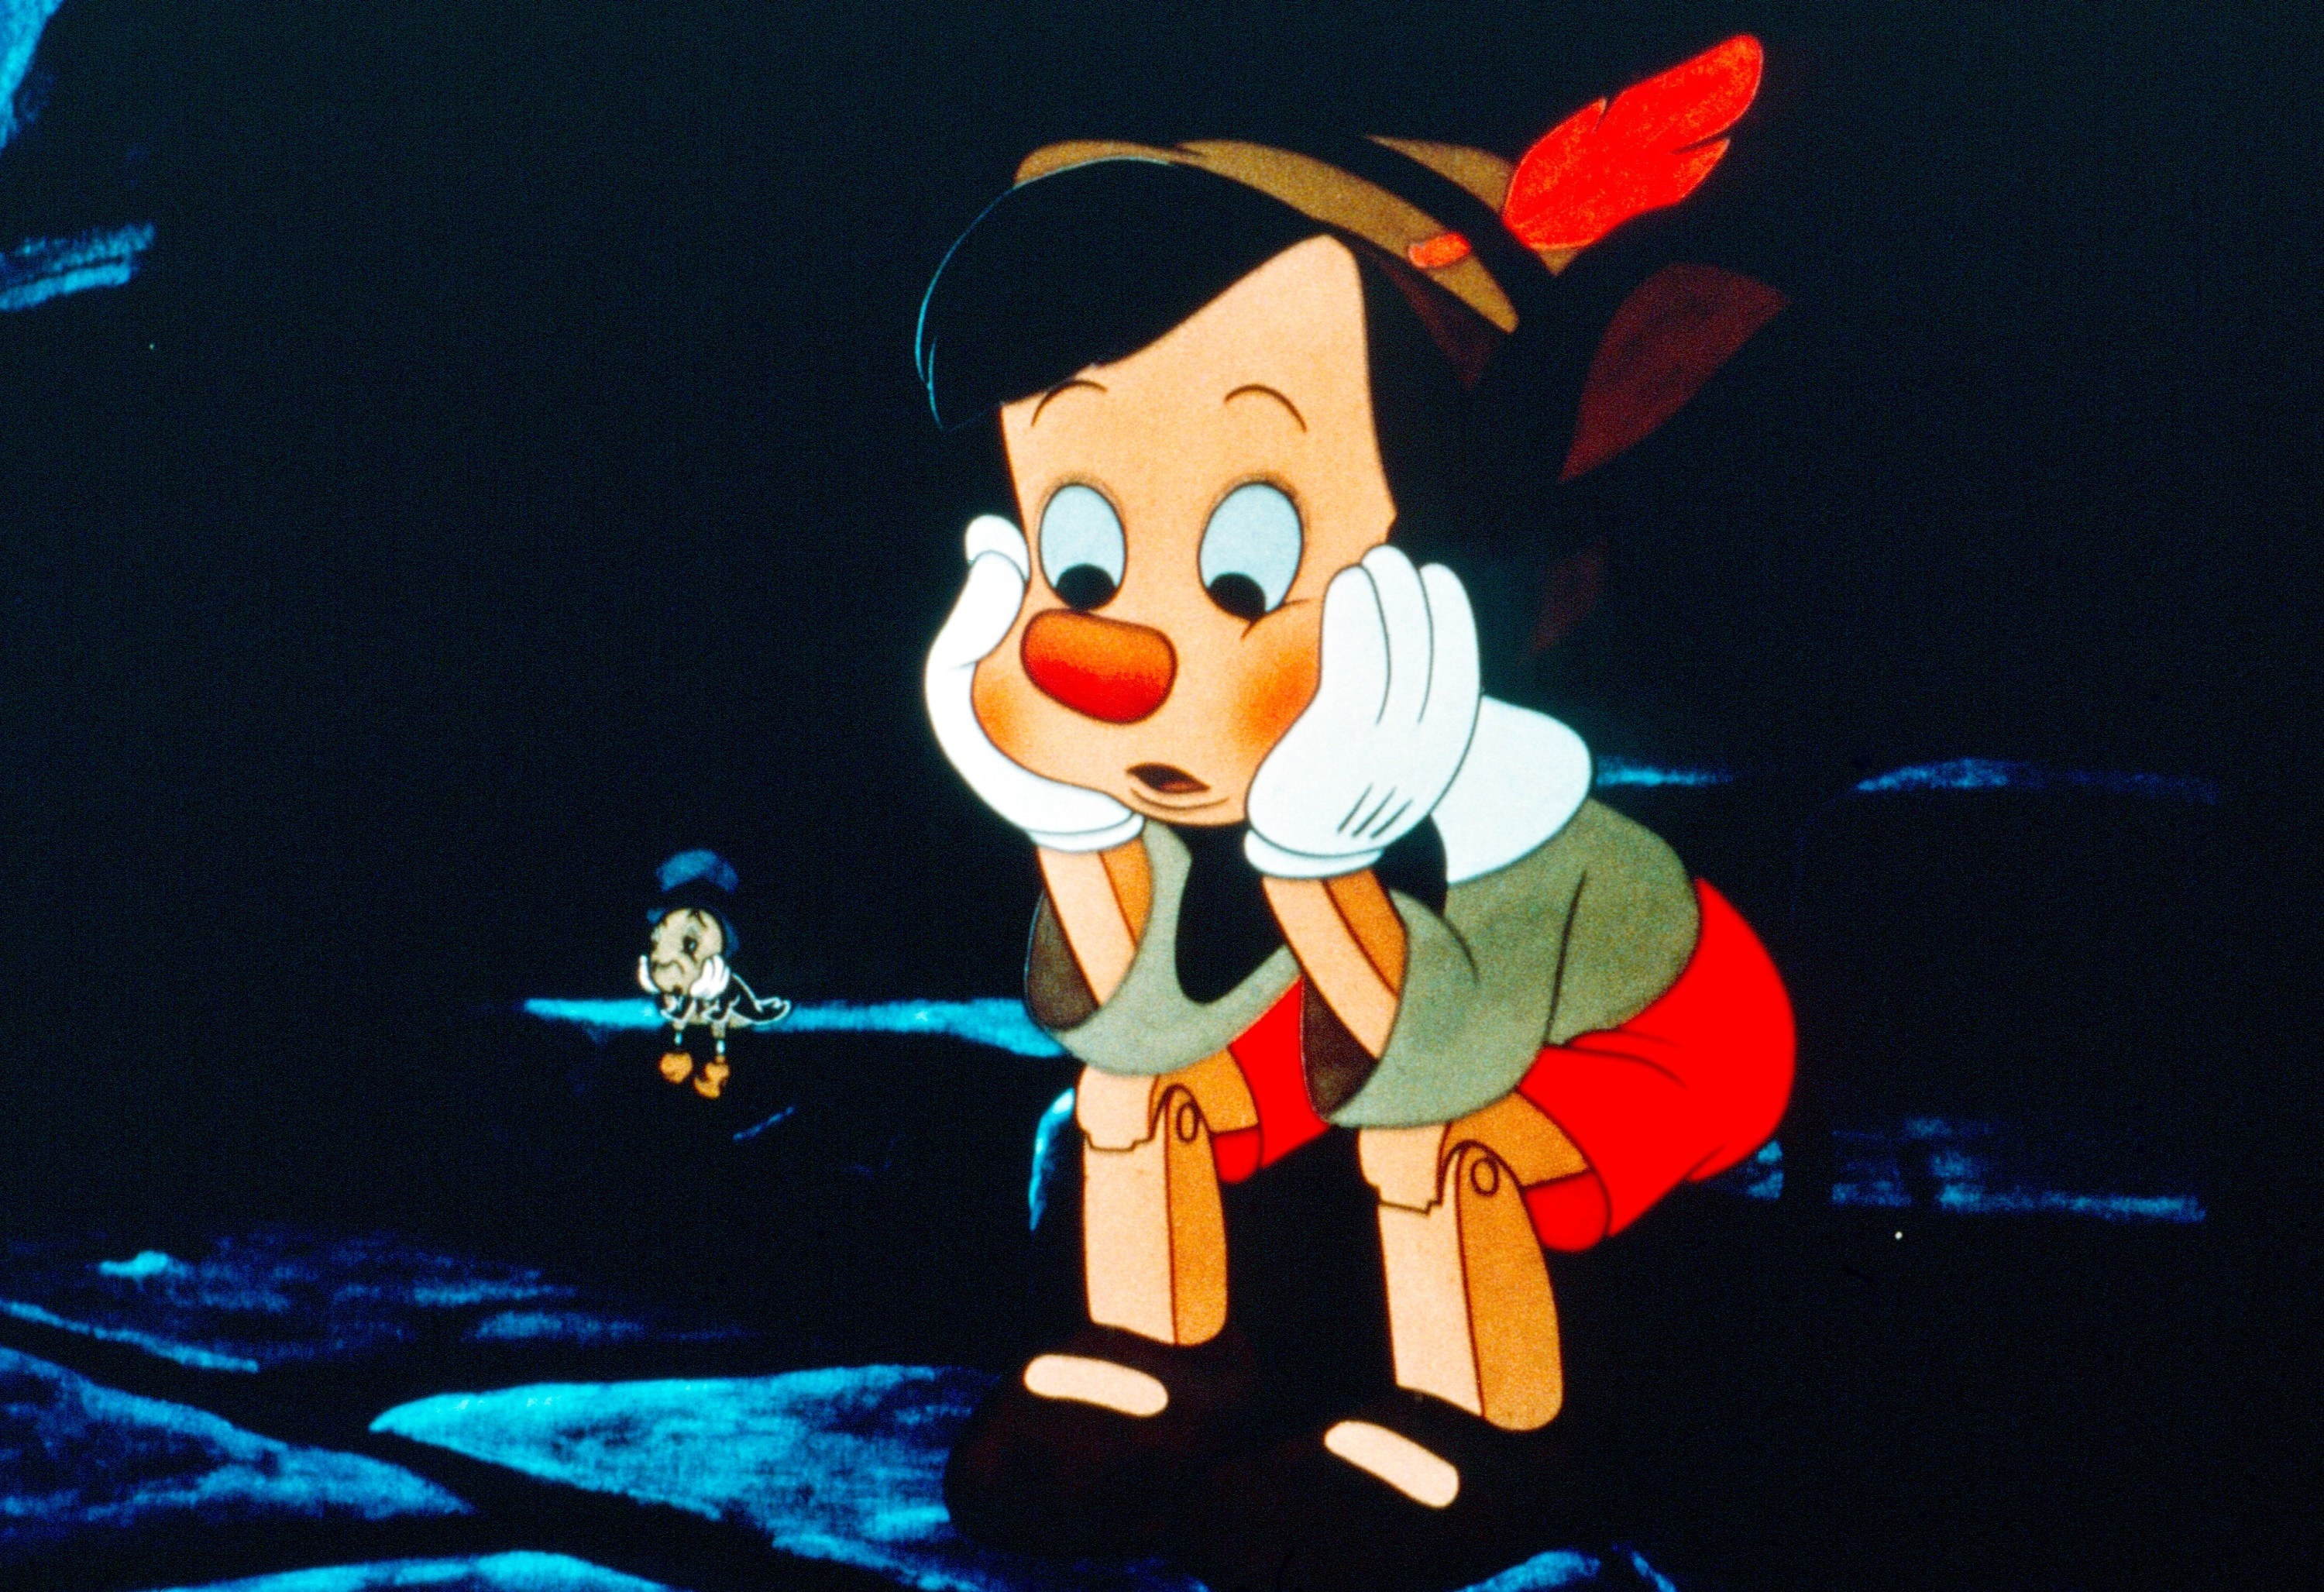 Pinocchio and Jiminy Cricket looking sad together